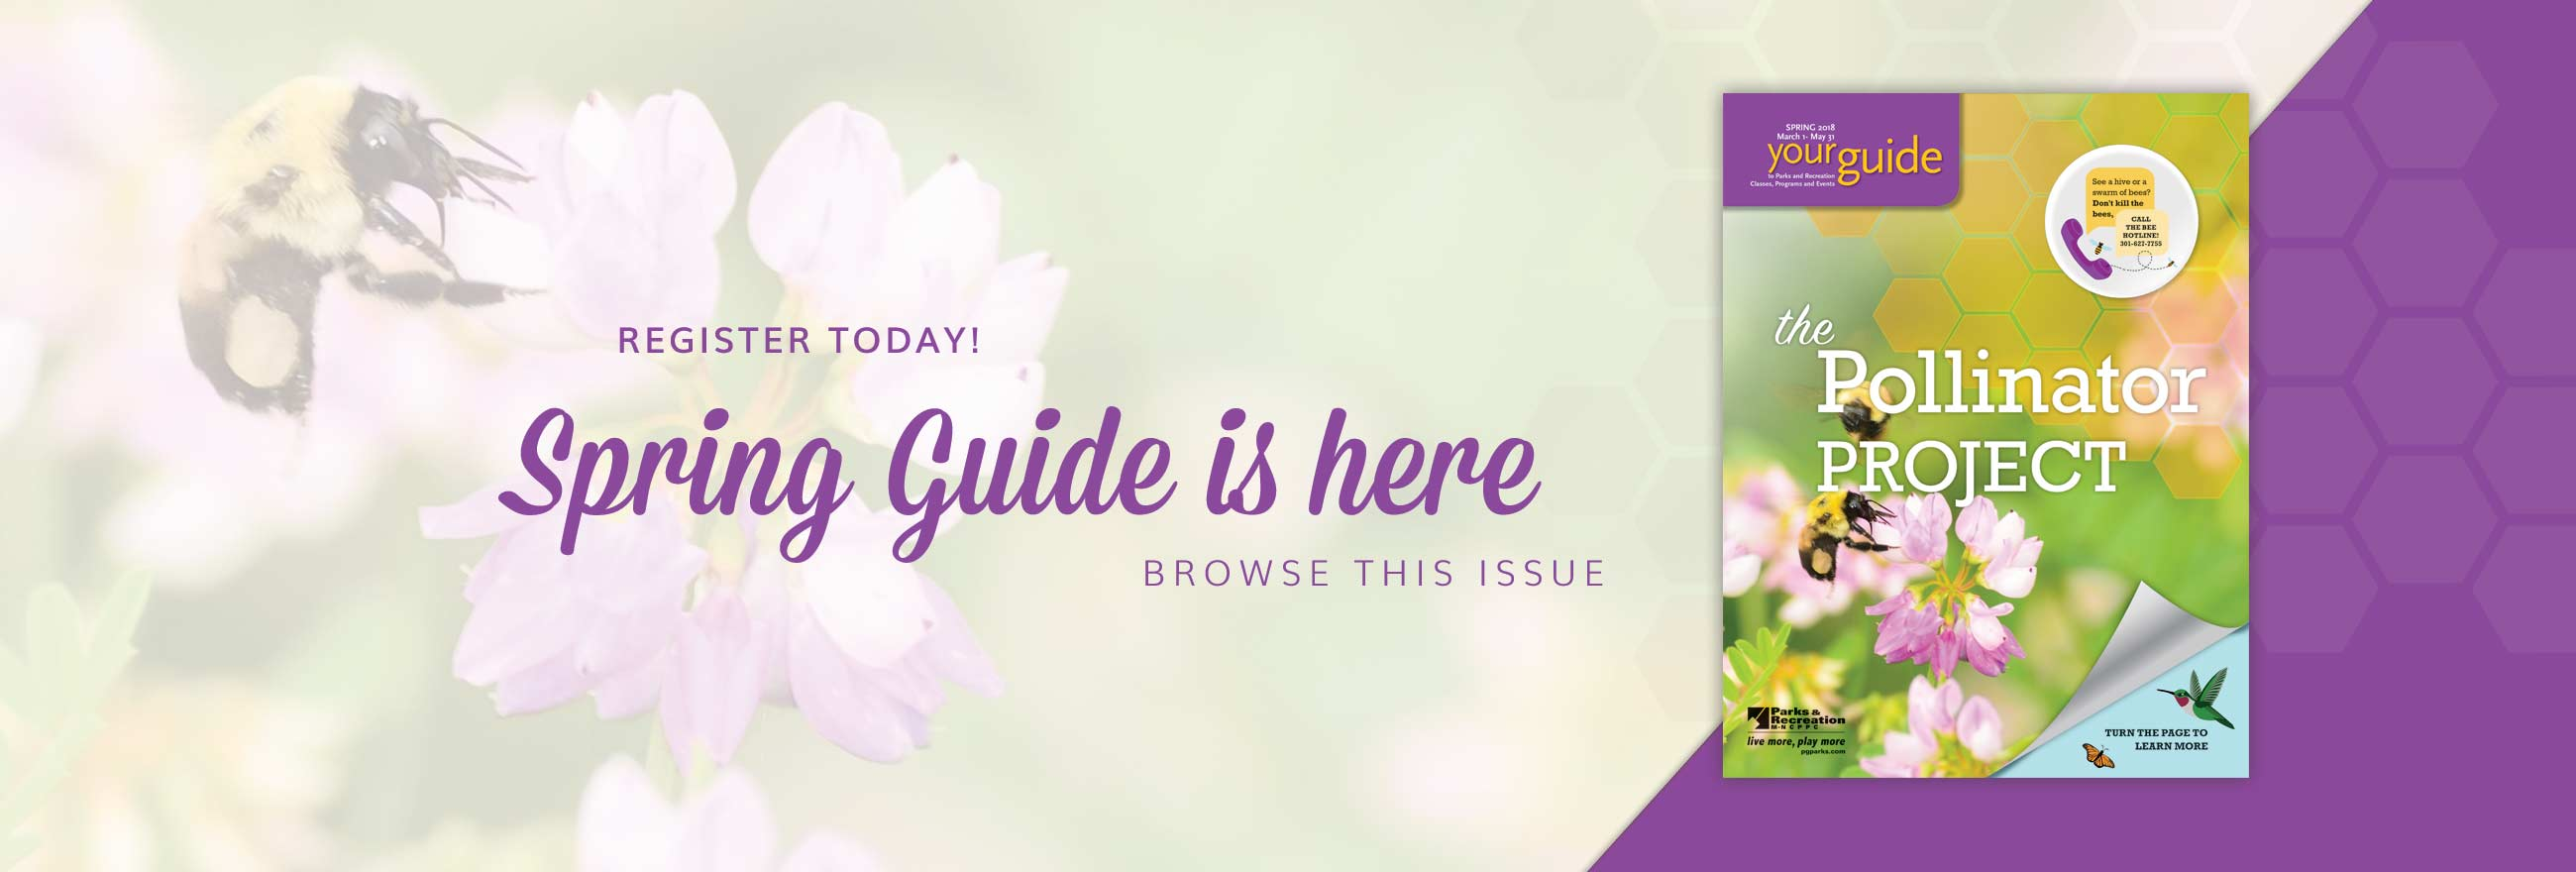 spring guide is here banner